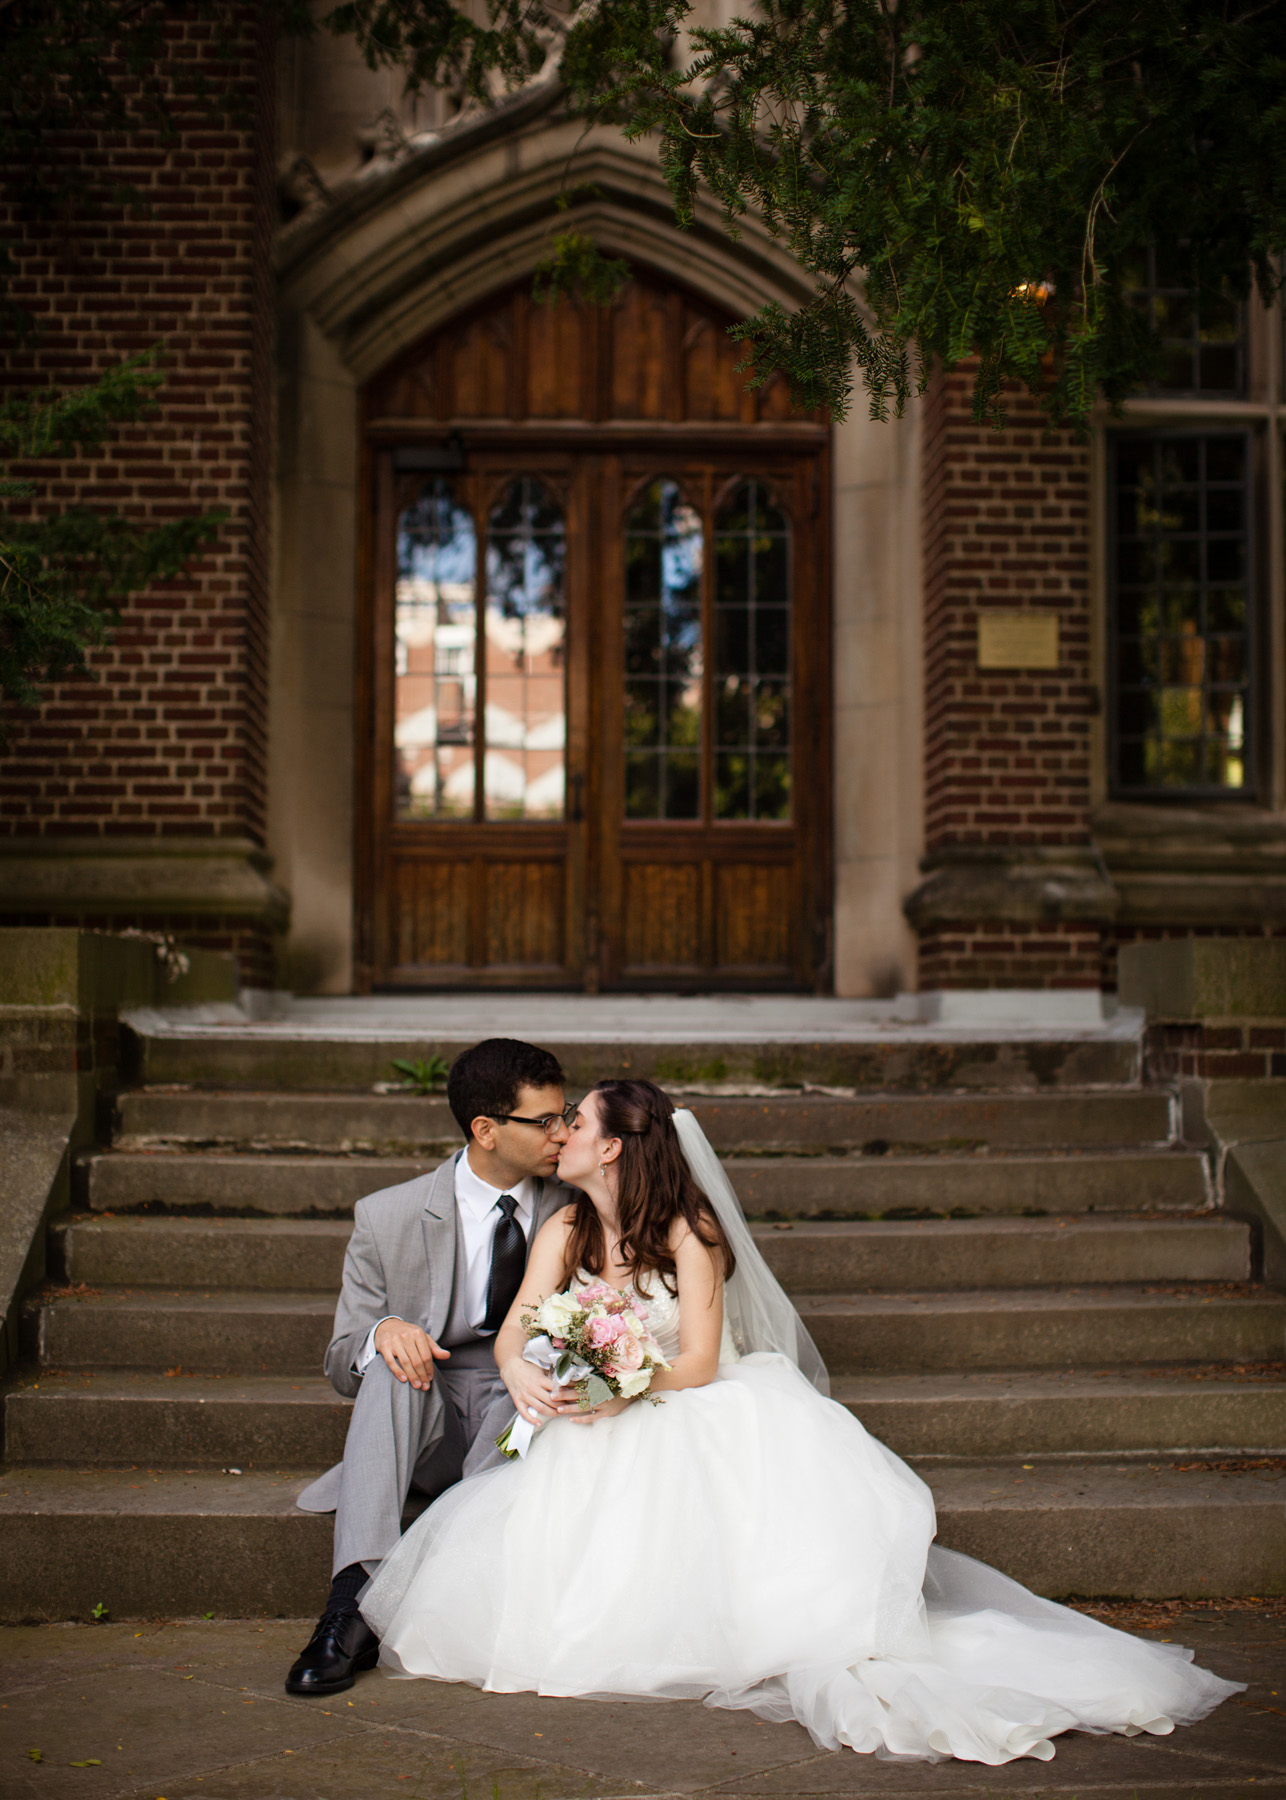 UofM_weddings_hull_melanie_reyes_057